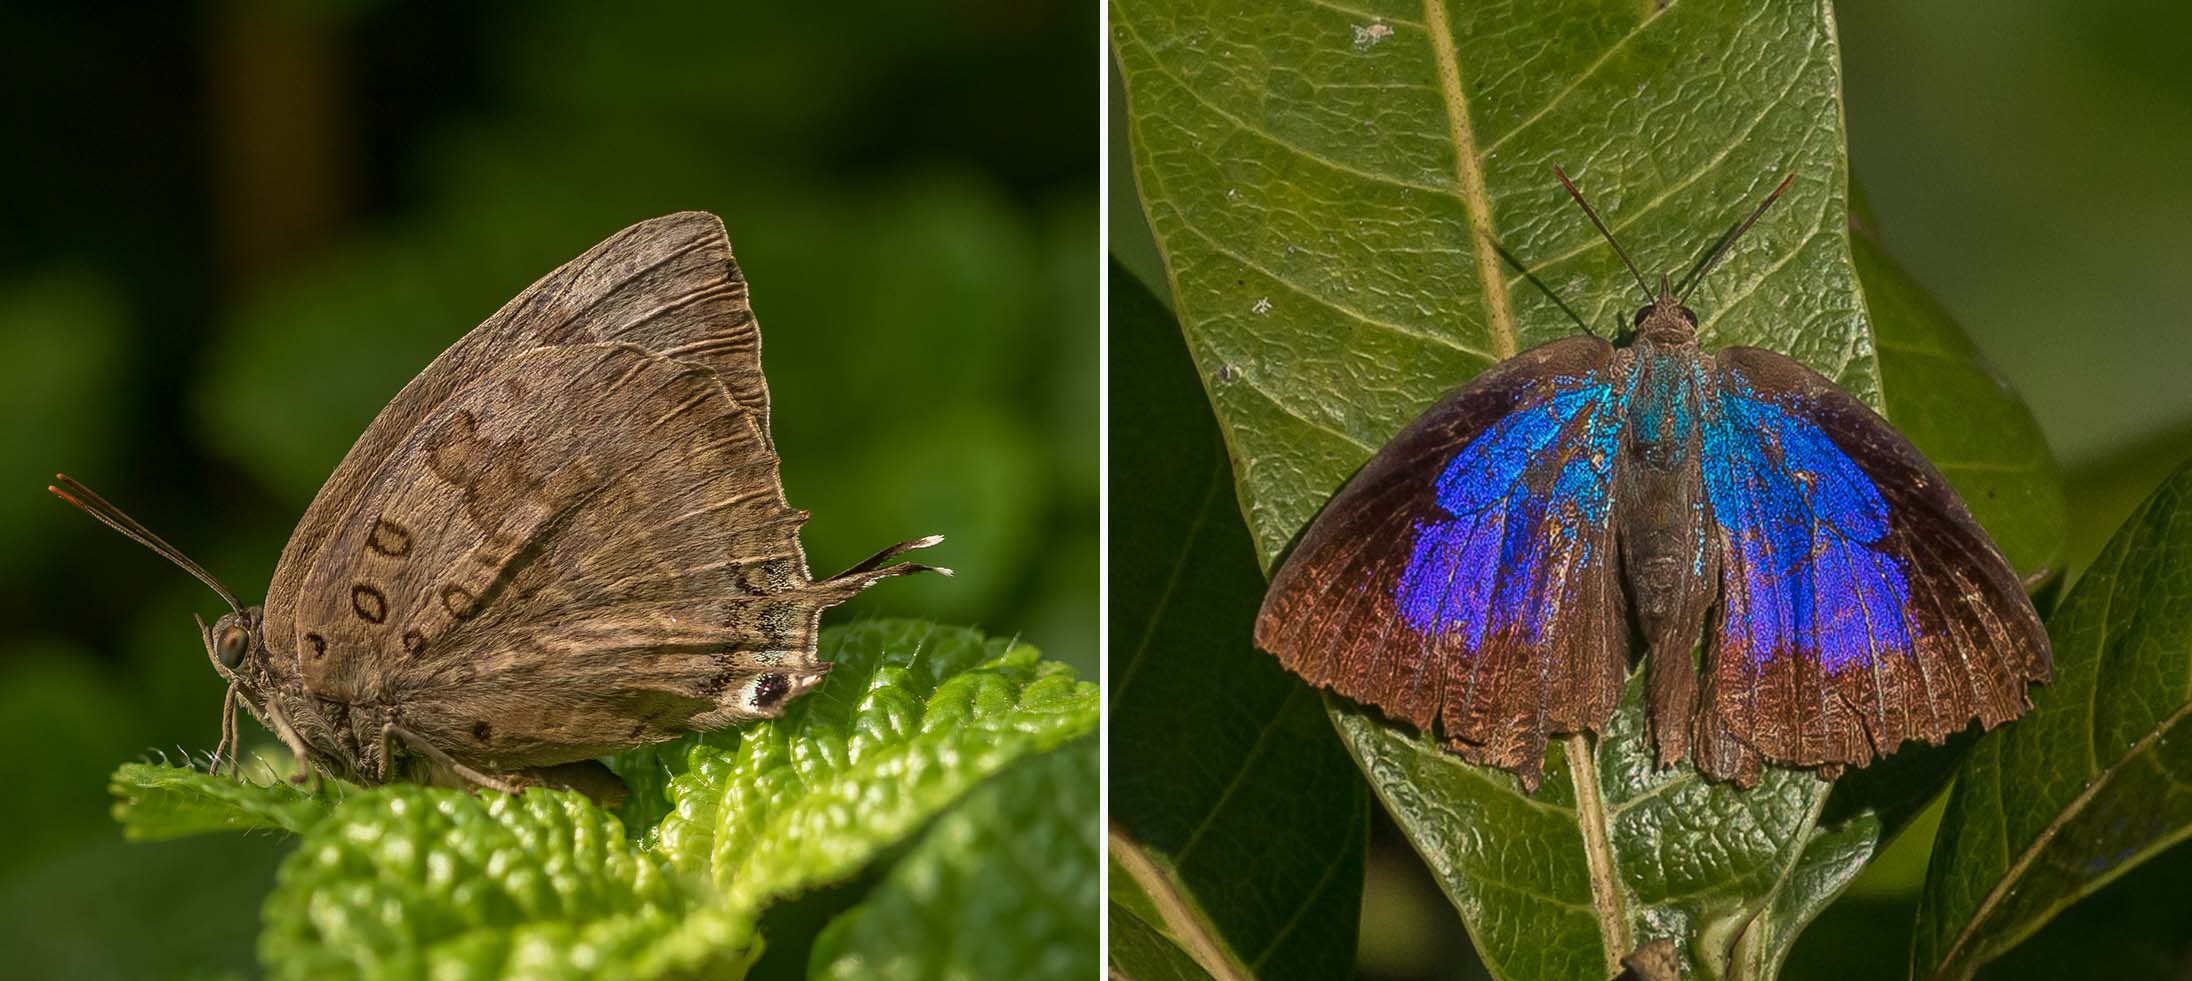 oakblue buttefly kanha india